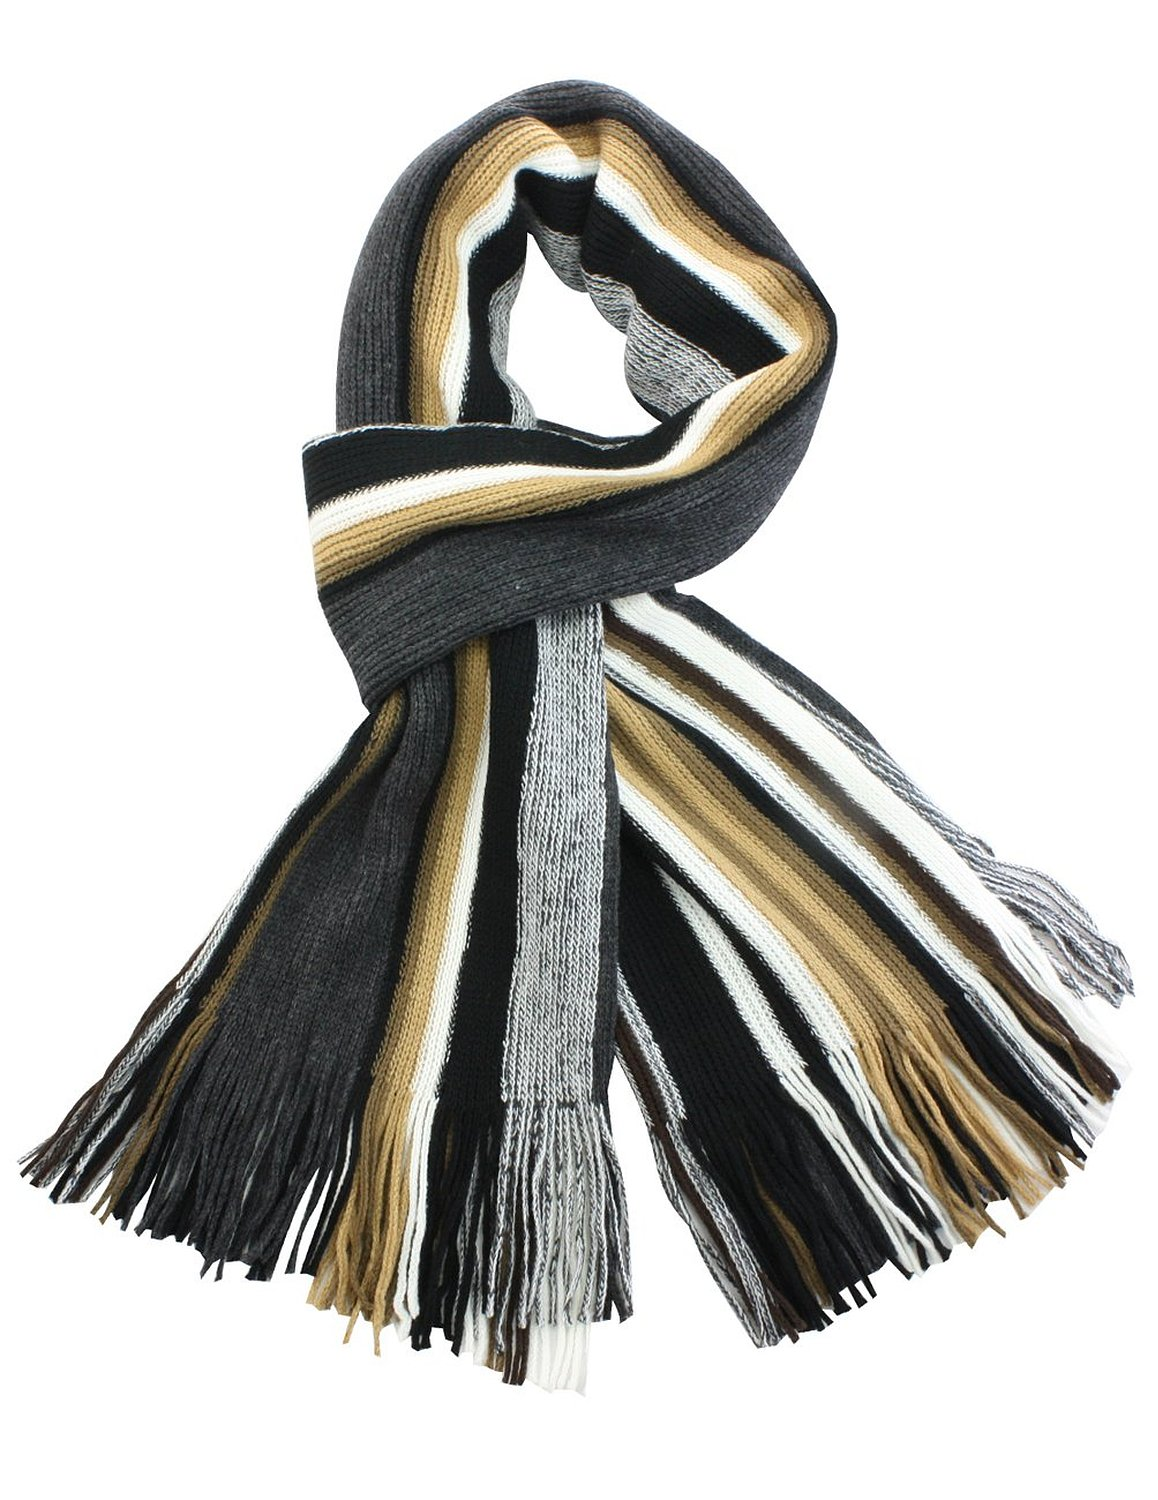 Striped Scarves and other fashion scarves, shawls, pashminas, wraps at archivesnapug.cf Shop online and check out our scarf tying tutorials today! 50% off sitewide with code KEEPCOZY LEARN MORE FREE SHIPPING IN THE USA*.